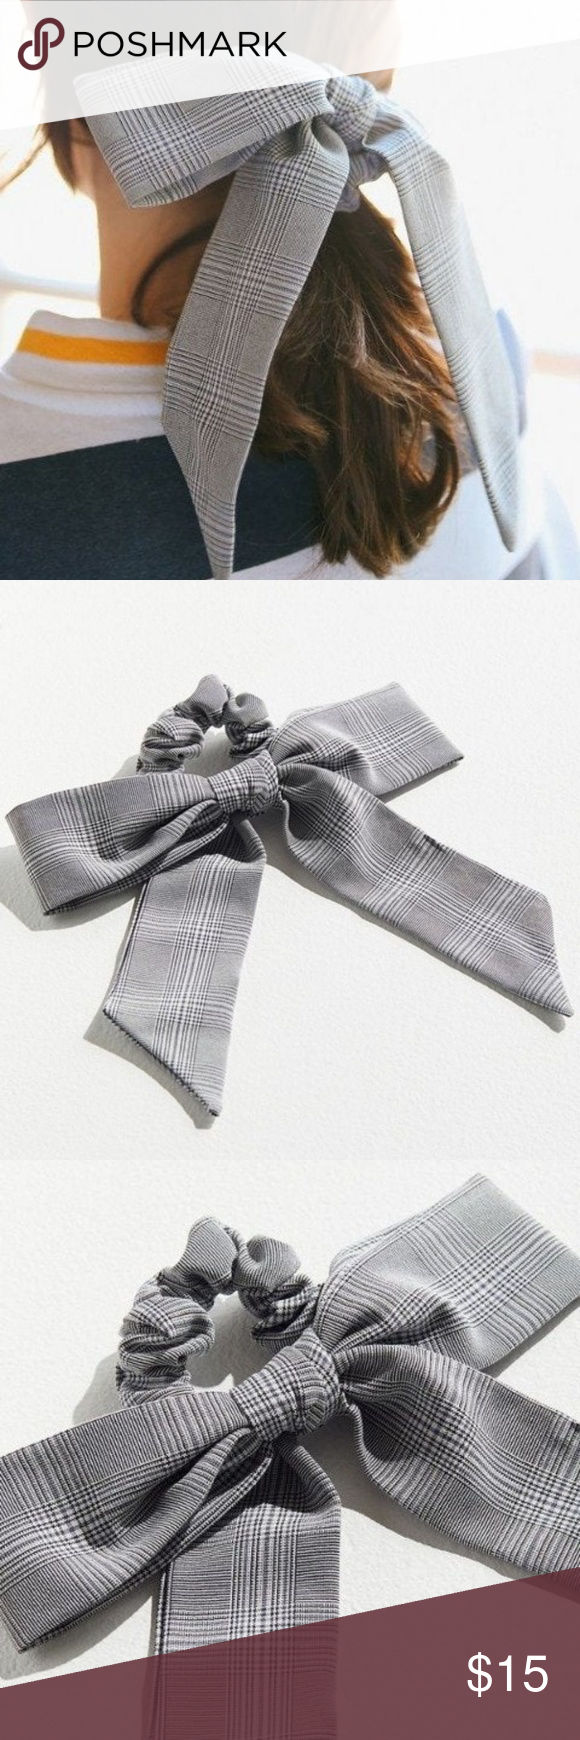 Cute Bow Scrunchie In Polyester Nwt New With Tag Super Cute Bow Scrunchie In Polyester Patterned Ponytail Holder Topp Fancy Bows Cute Bows Scrunchies